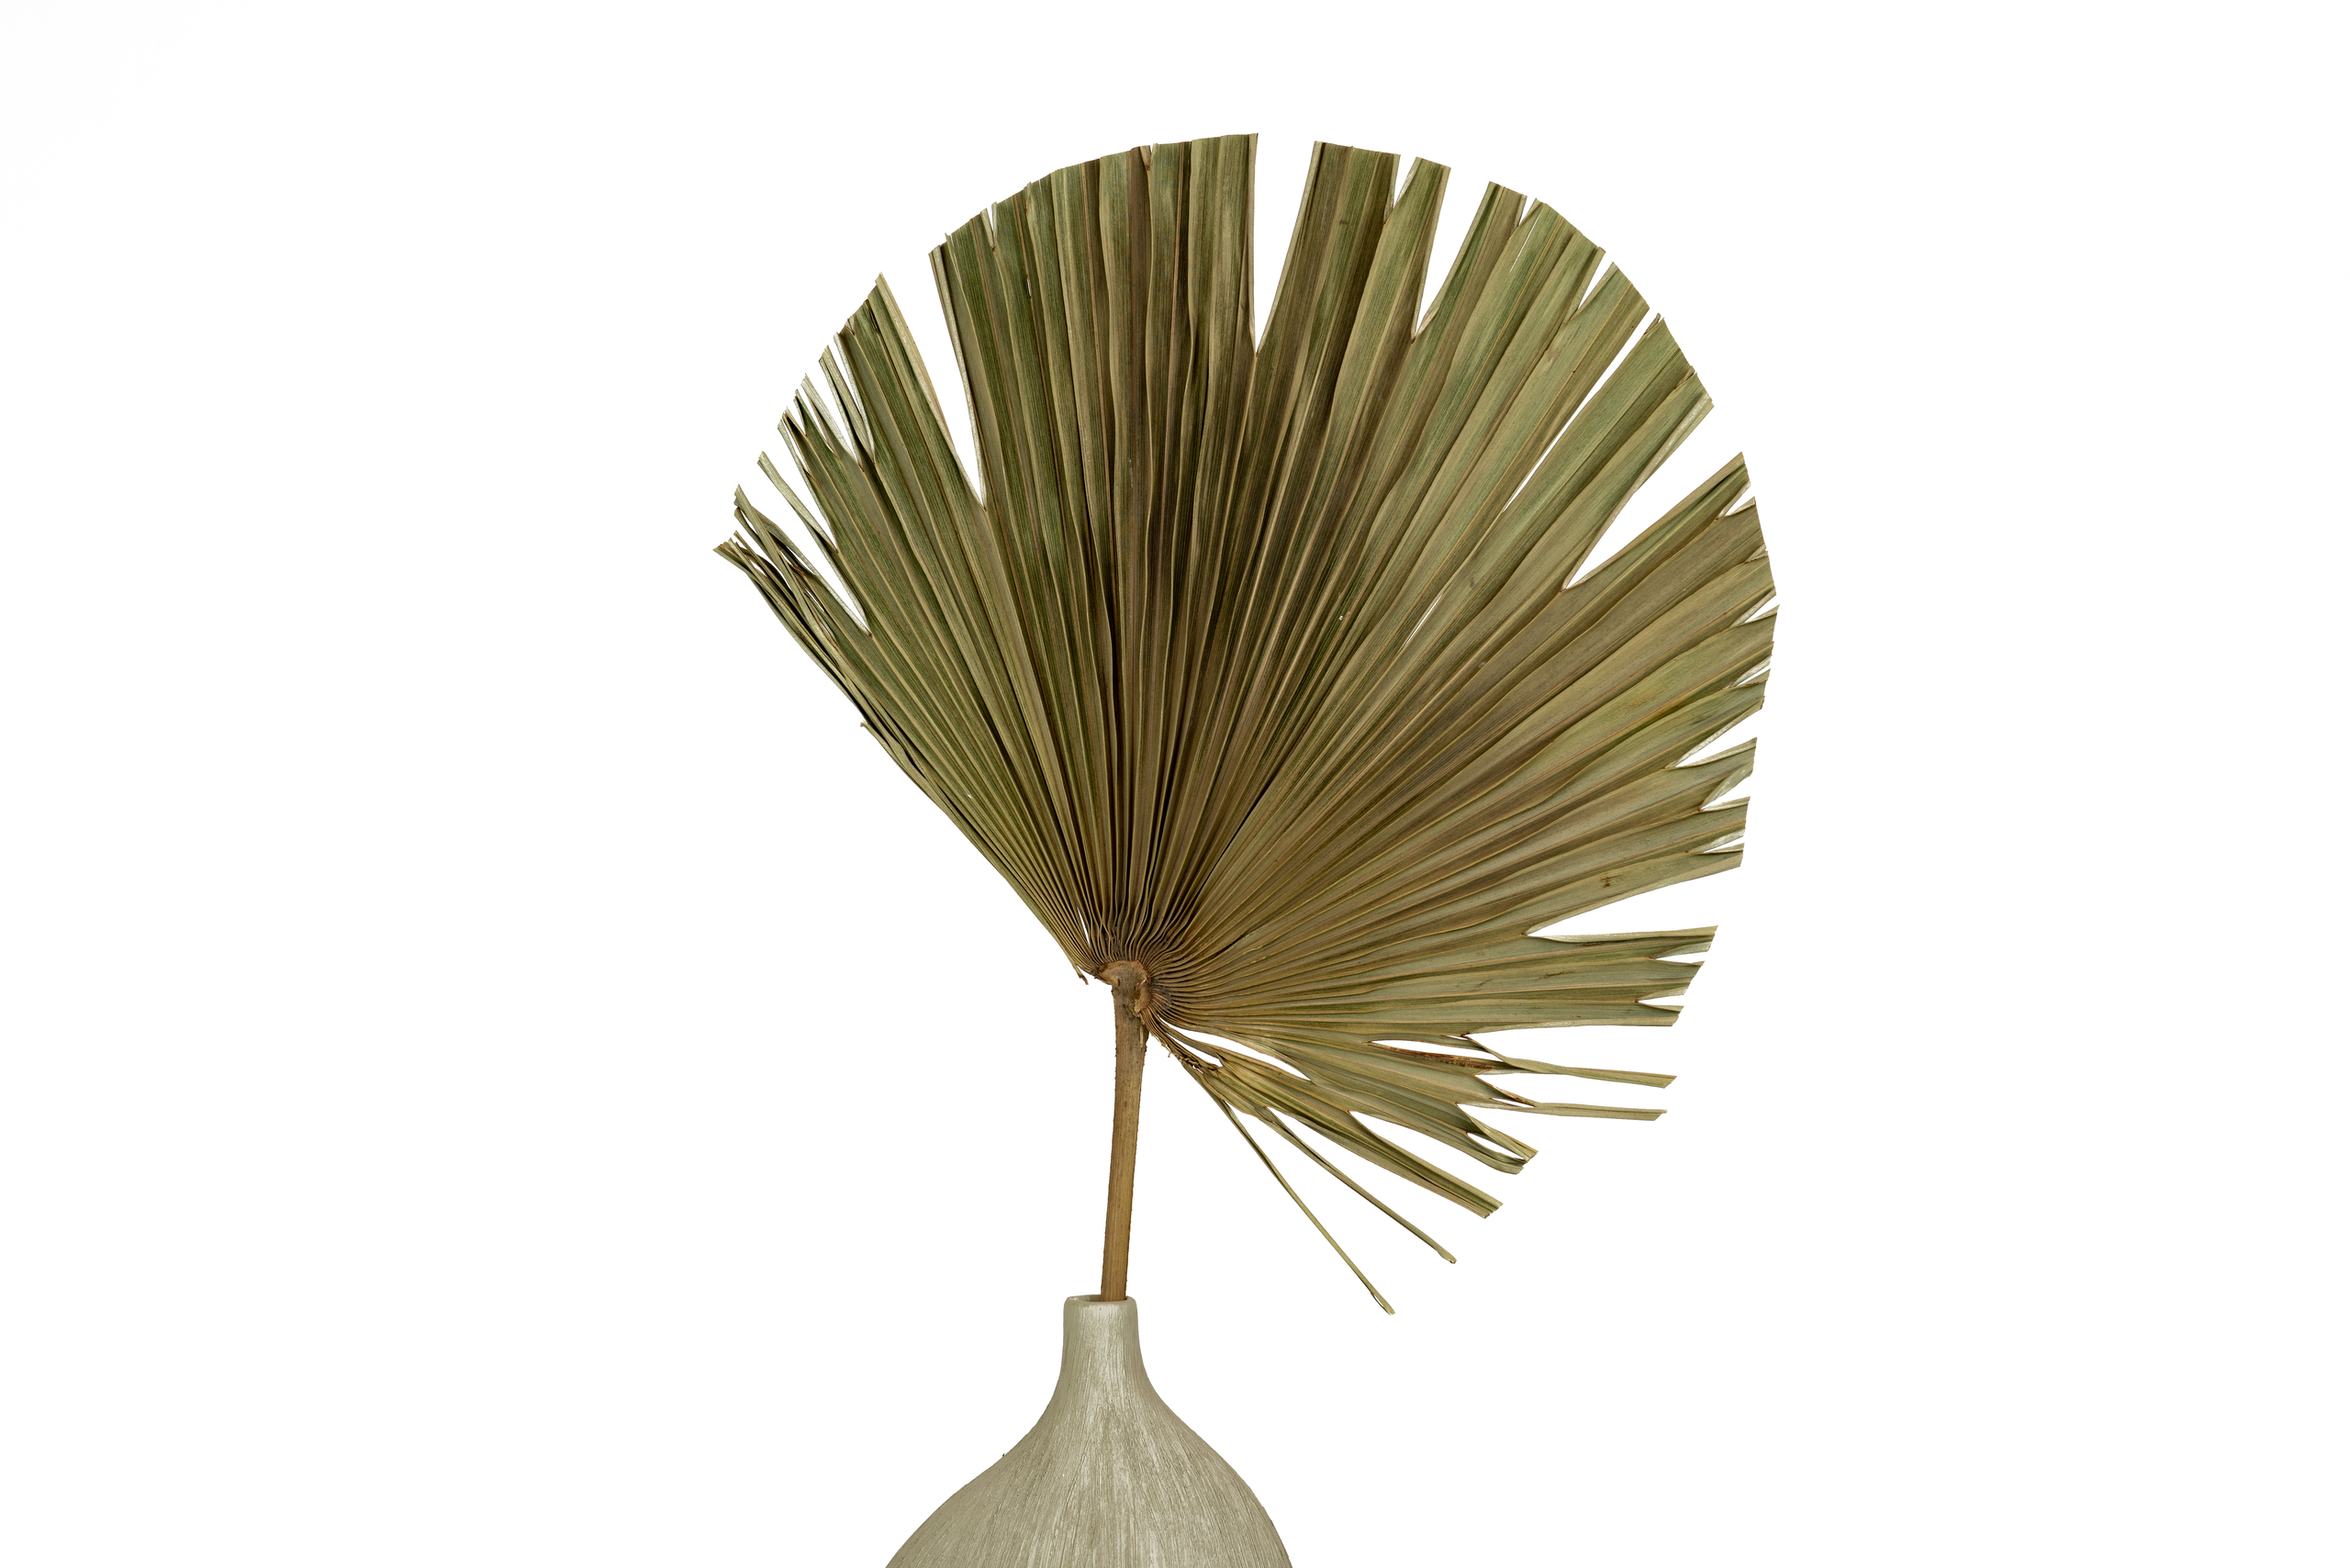 ASSORTED TRIMMED PALM LEAVES